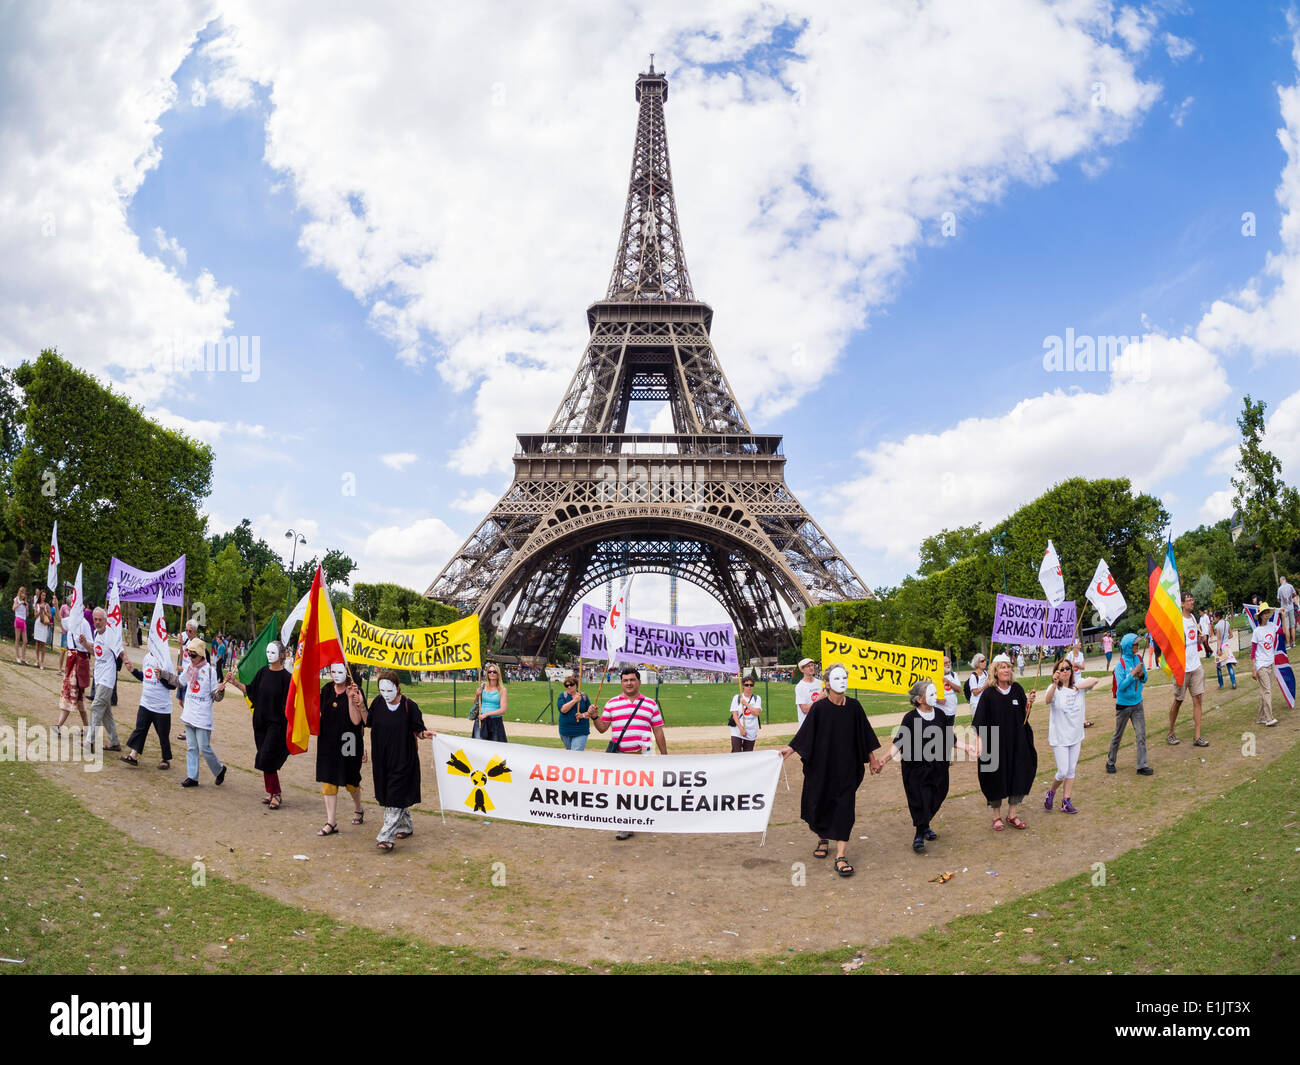 Peace activists from various countries demonstrate for the abolition of nuclear weapons at the Paris Eiffel Tower. - Stock Image